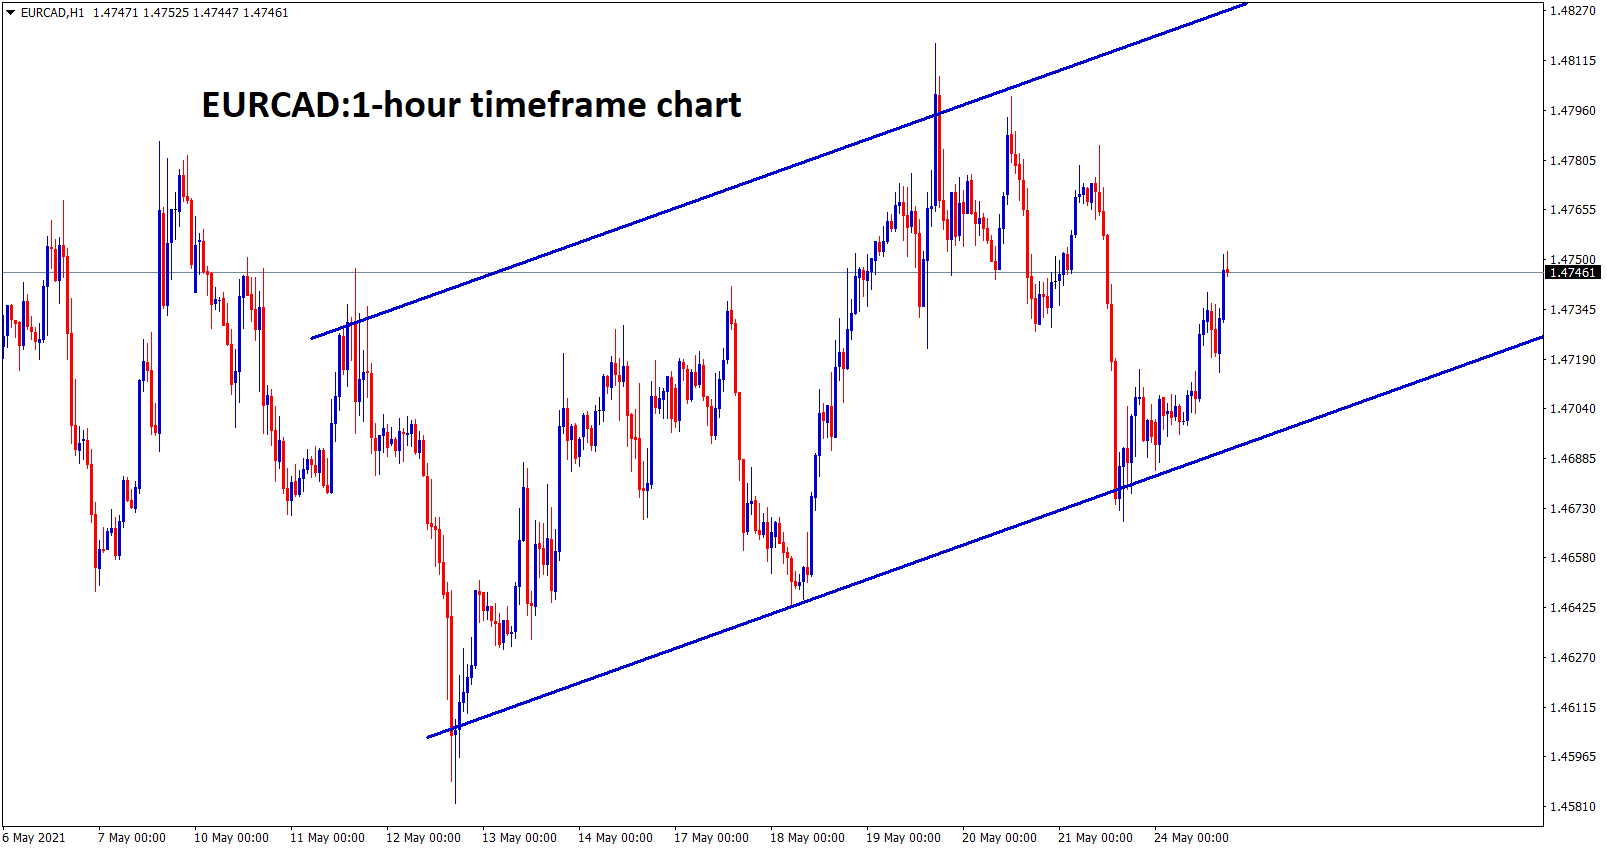 EURCAD is moving in an Ascending channel in the 1 hour timeframe